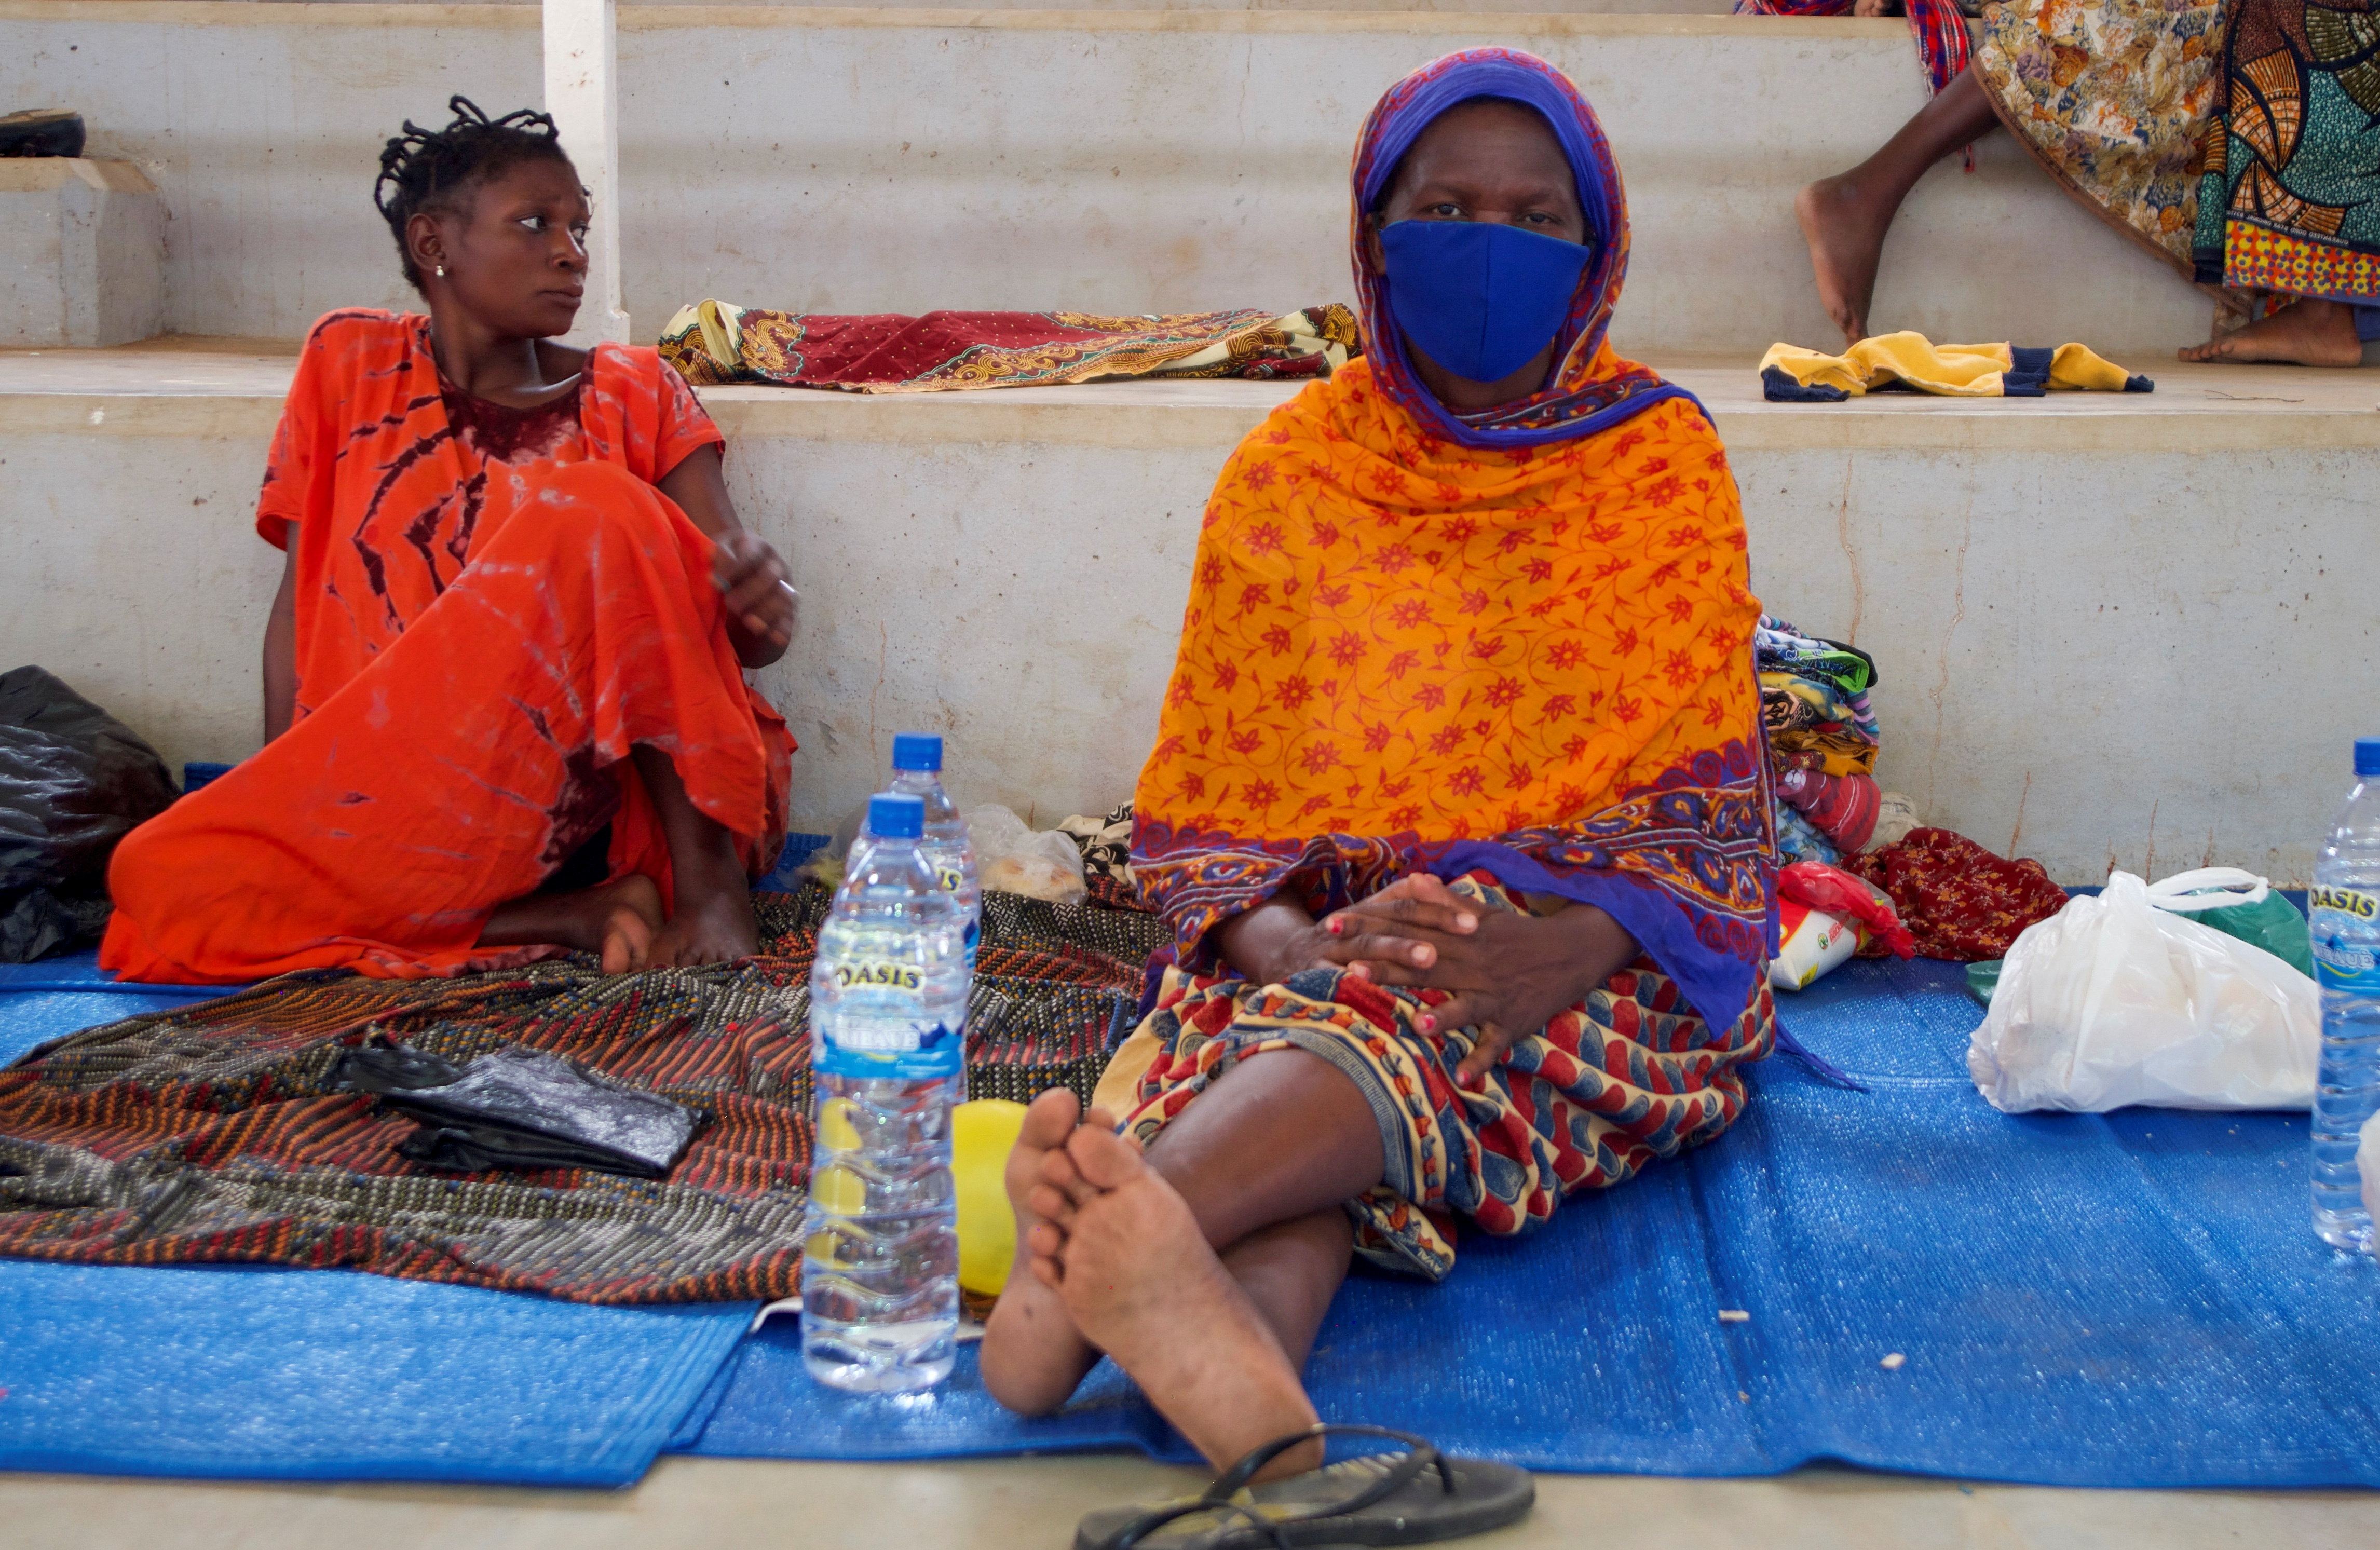 Displaced women sit on mats after fleeing an attack claimed by Islamic State-linked insurgents on the town of Palma, at a displacement centre in Pemba, Mozambique, April 2, 2021. REUTERS/Emidio Jozine/File Photo